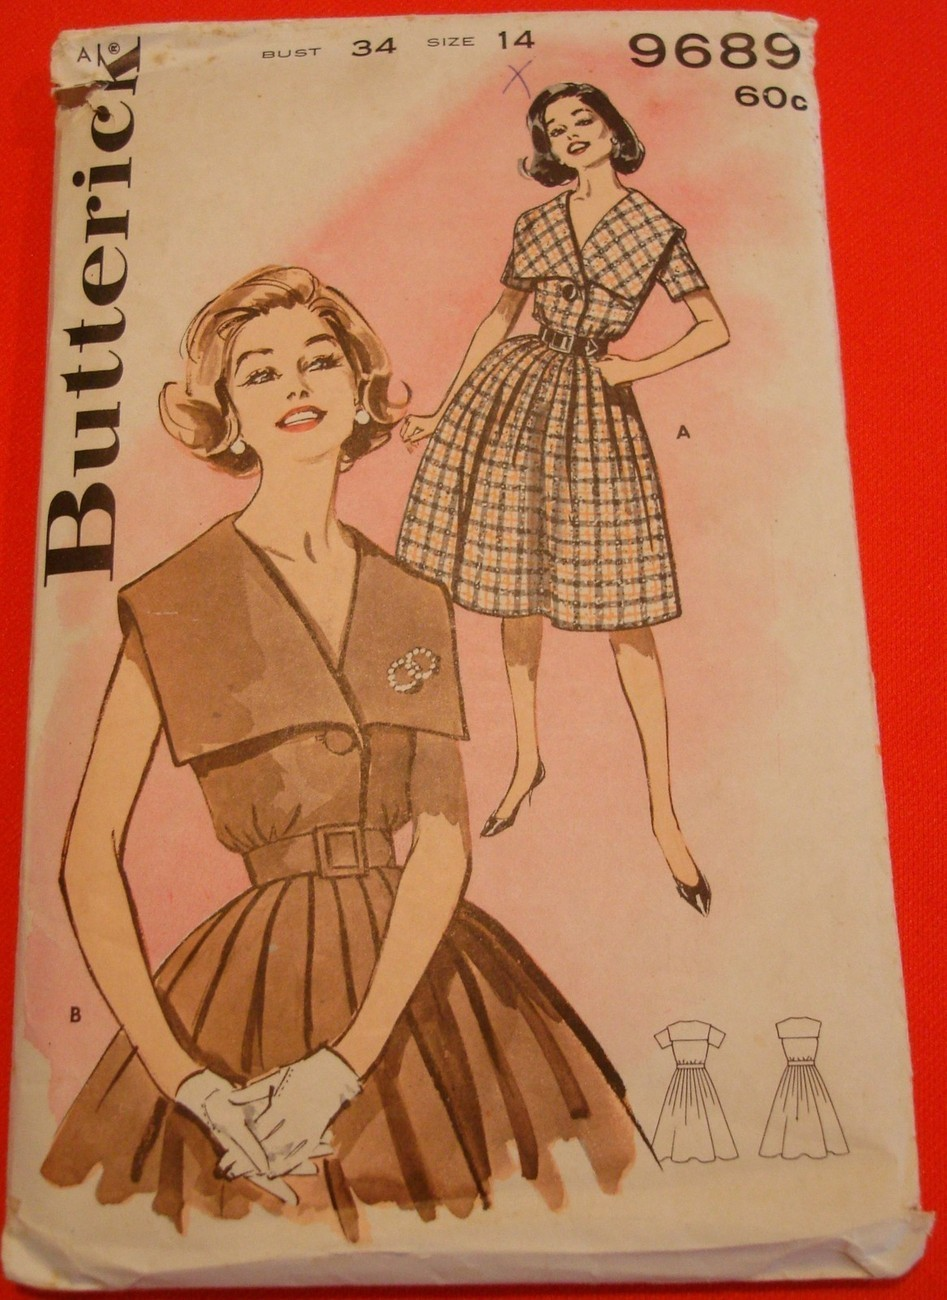 Vintage 1960s Dress Pattern UNCUT Big Collar Full Skirt Butterick 9689 Sz14 B34